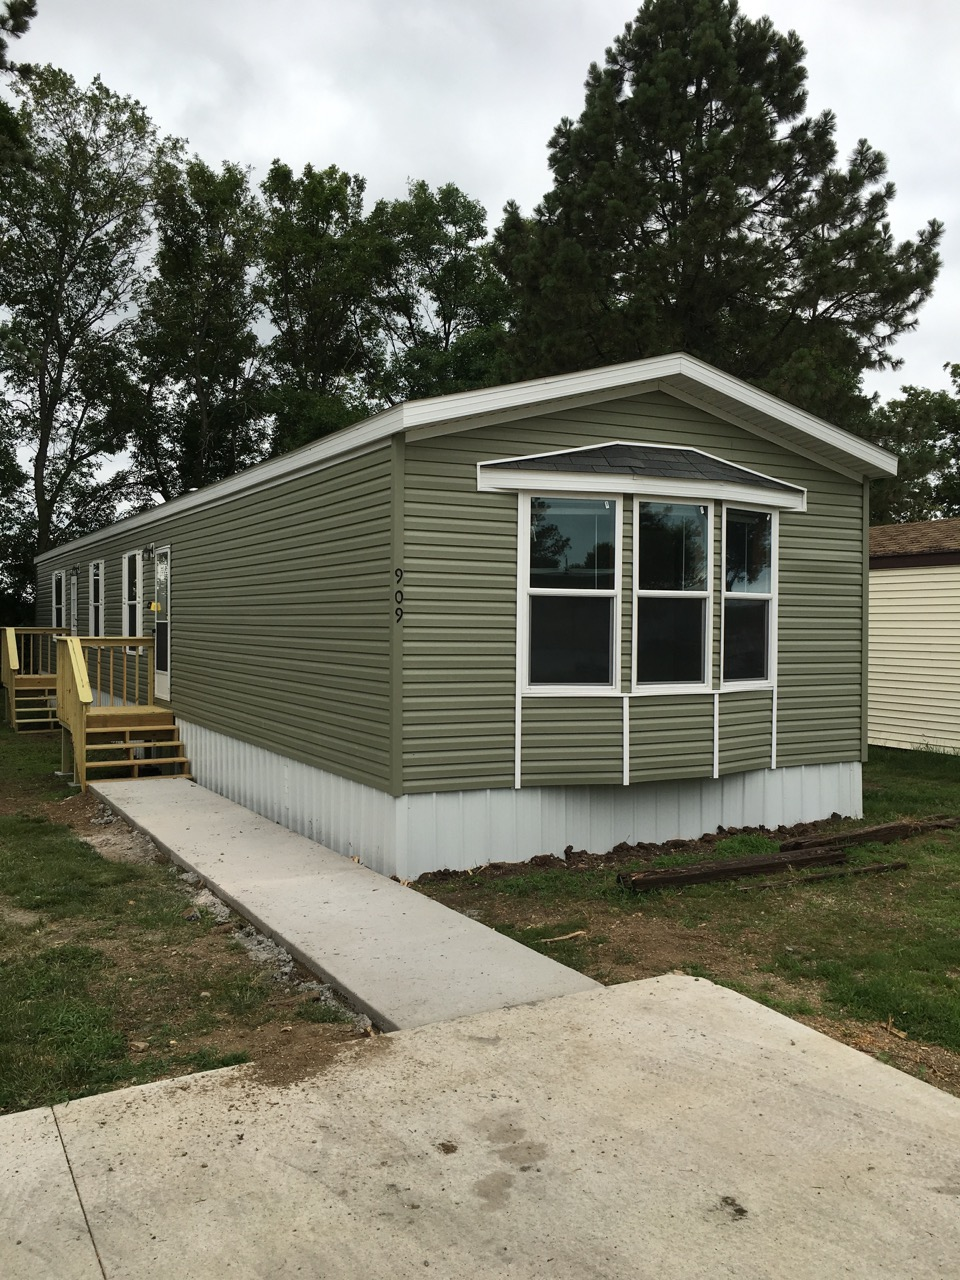 Singlewide mobile home